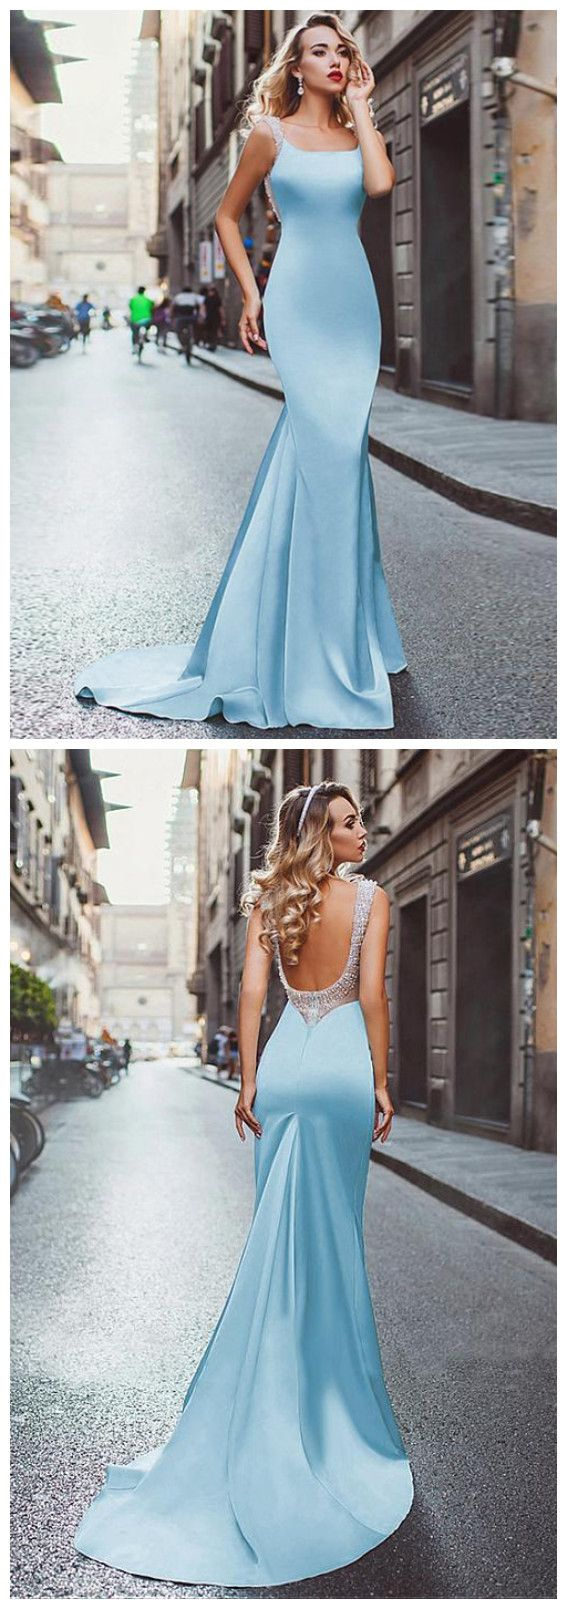 Chic mermaid prom dresses light sky blue straps modest long prom